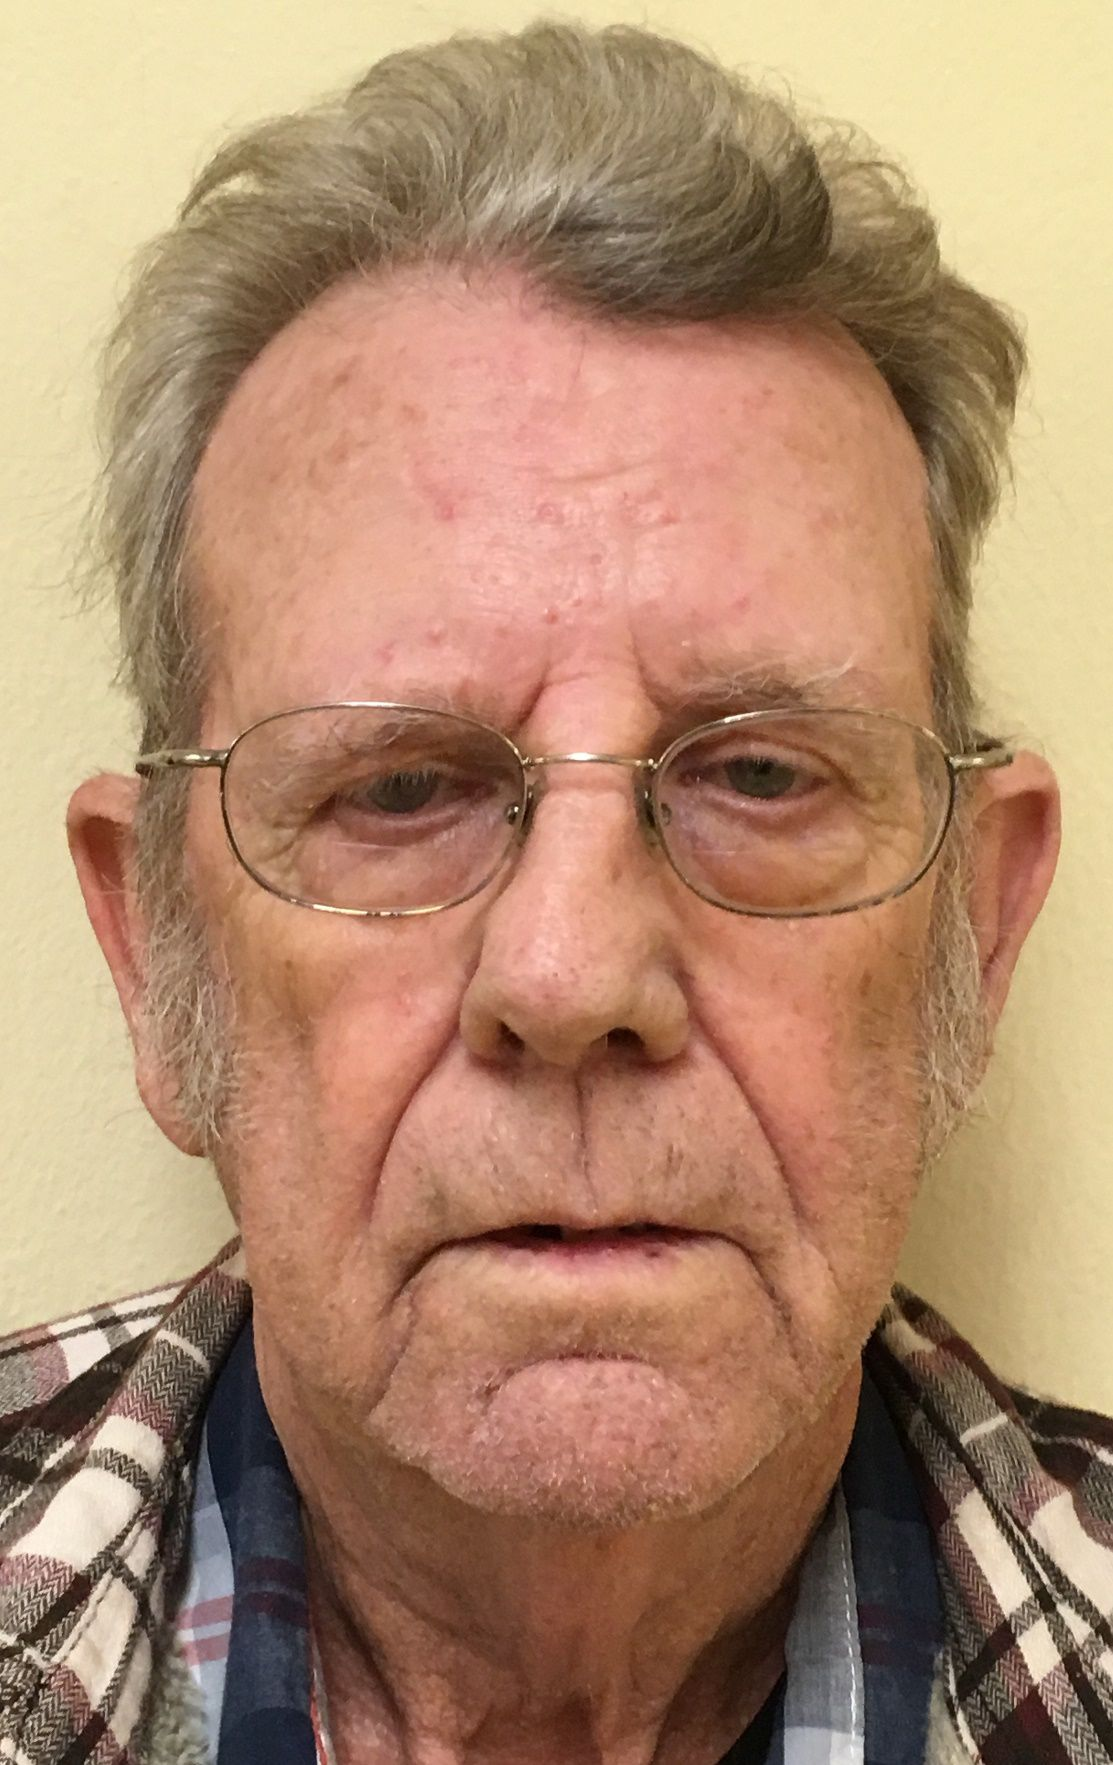 Constable Barney Brown indicted on aggravated assault and